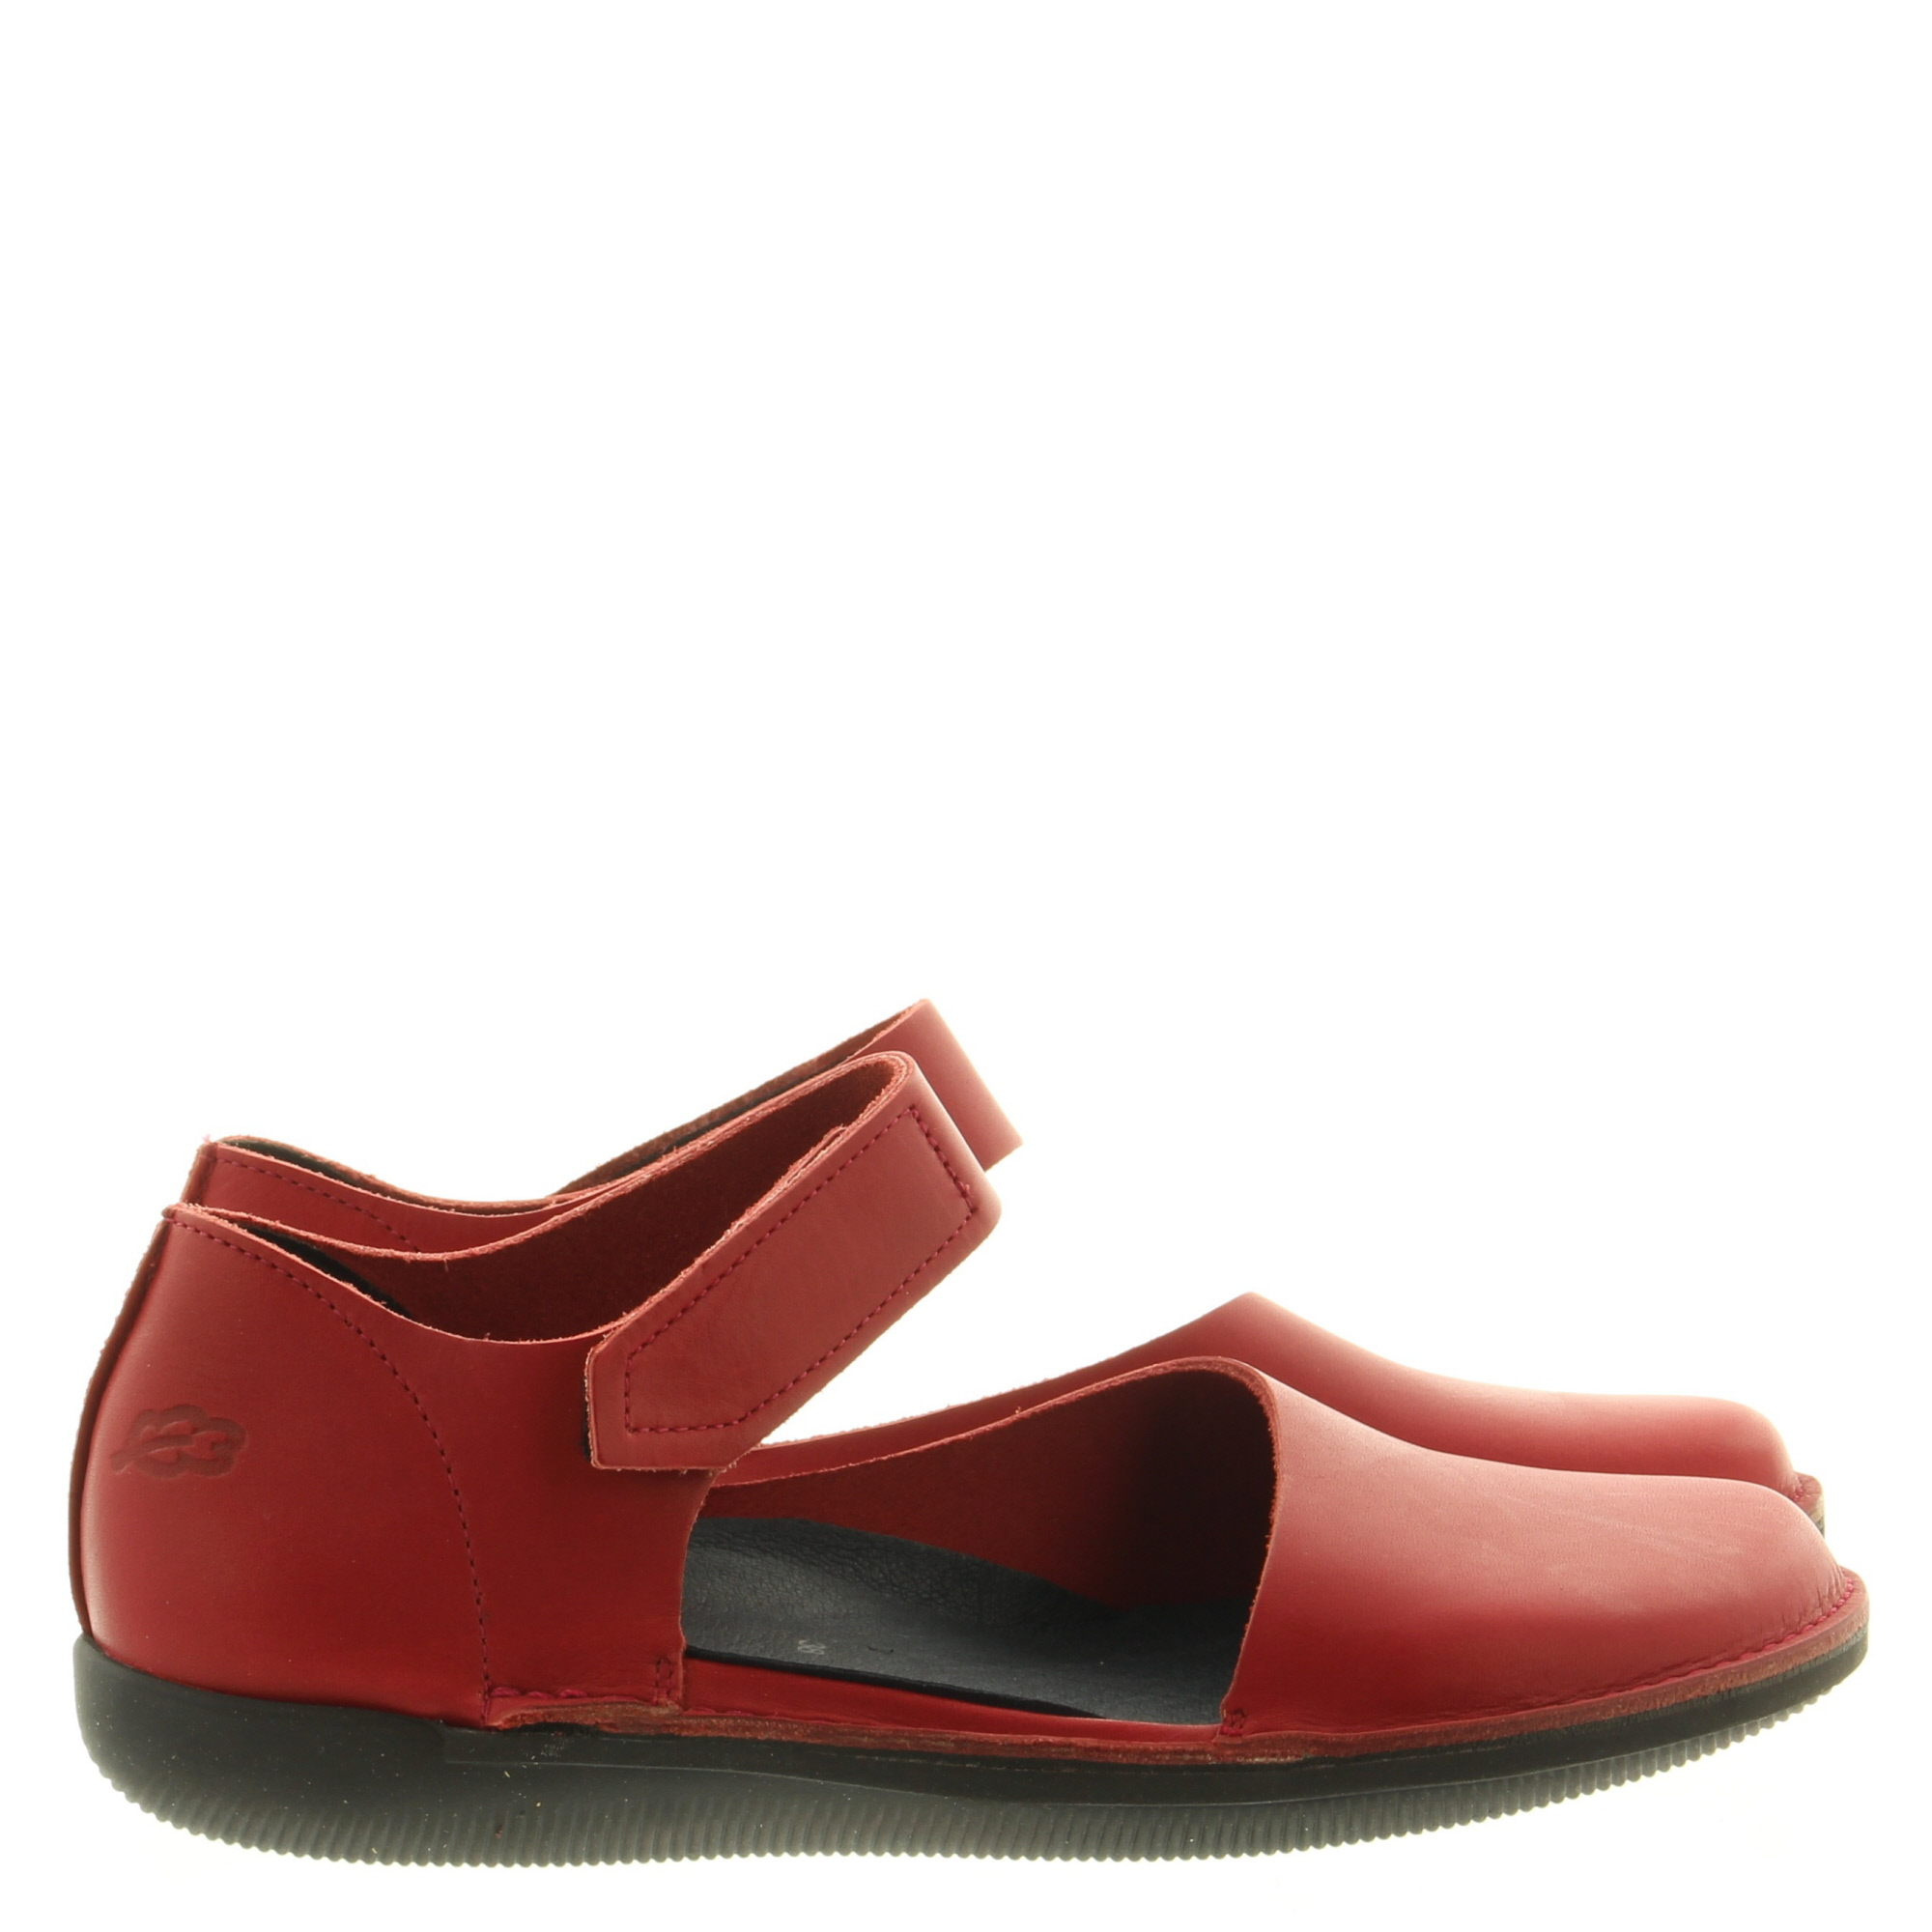 Loints 68102 Noetsele 0621 Red